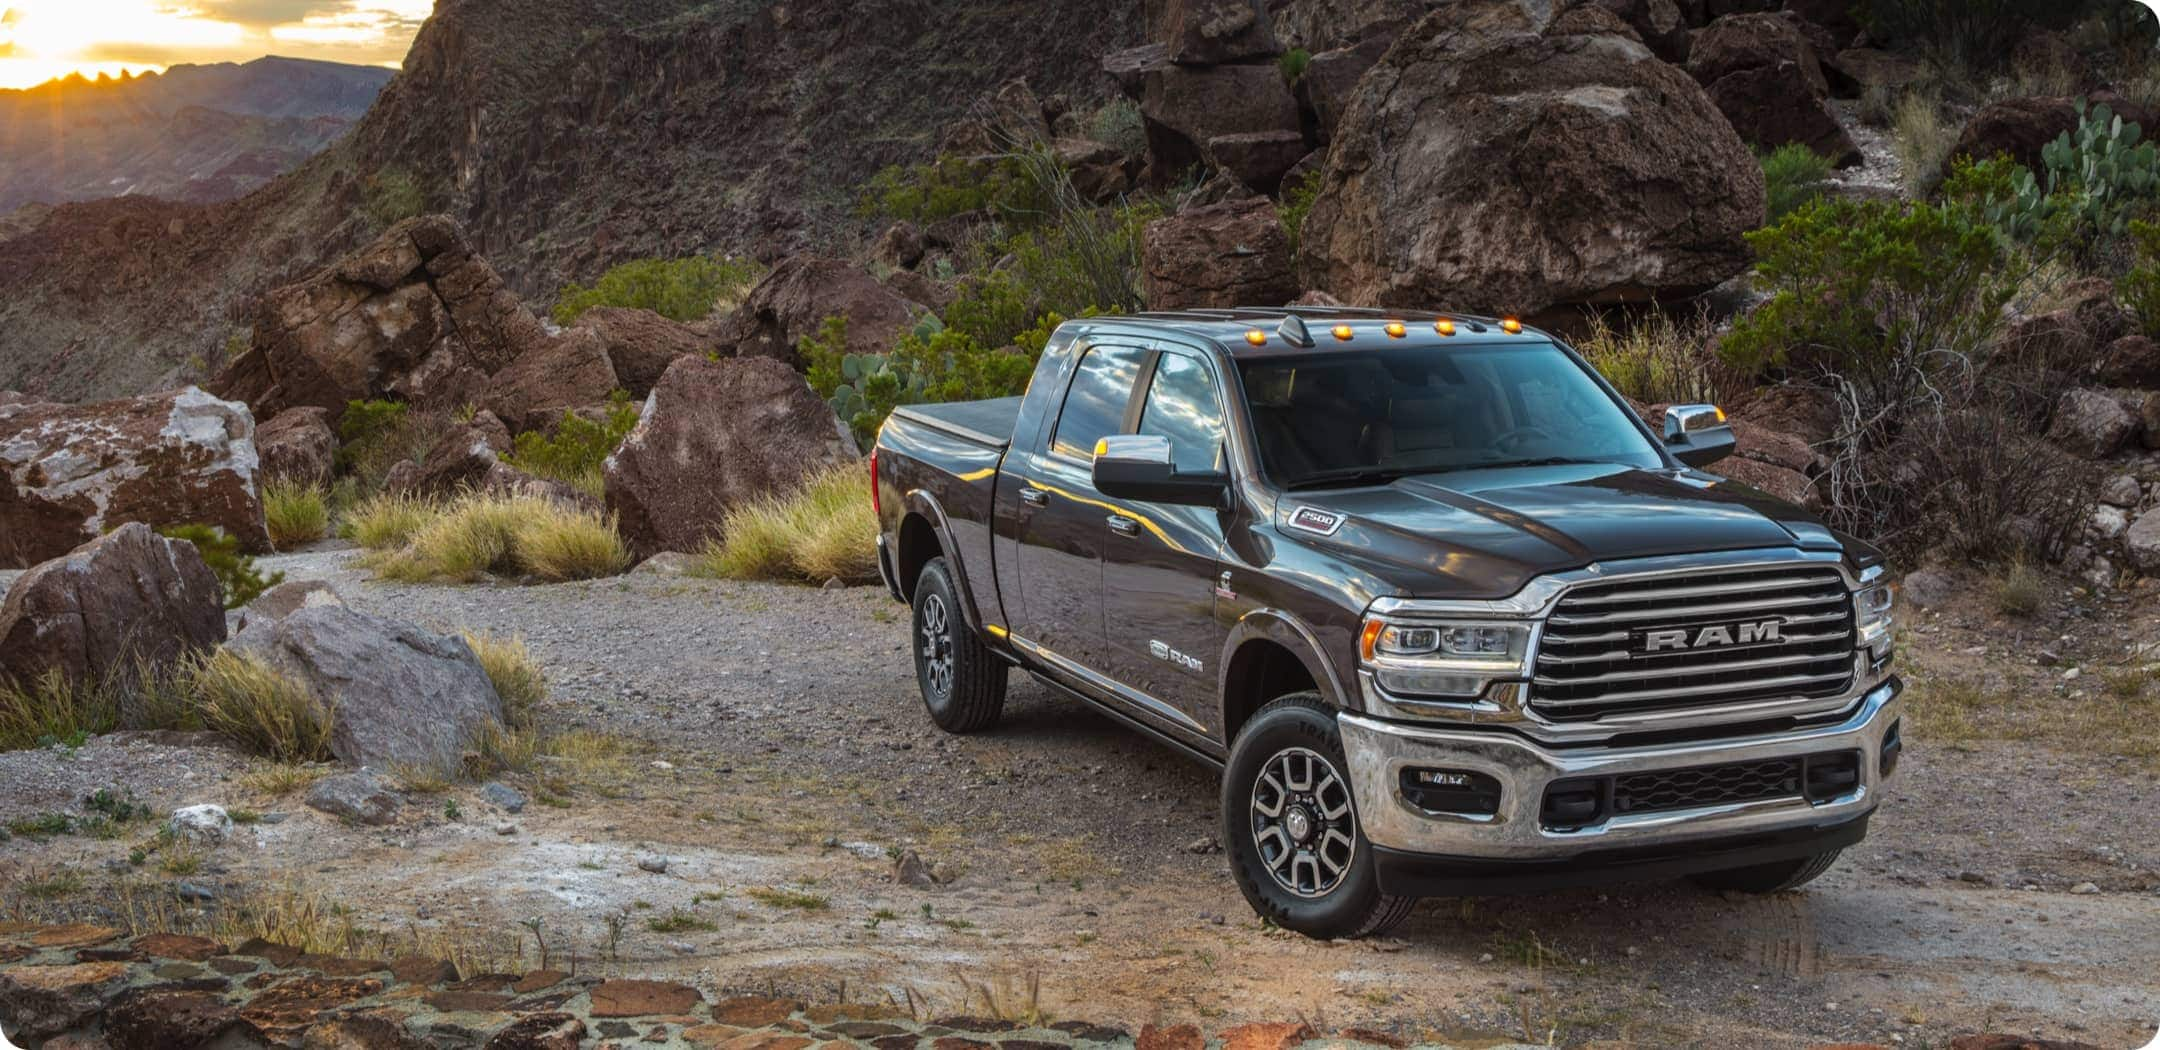 Display A 2021 Ram 2500 Limited Longhorn, parked on a trail in the mountains.